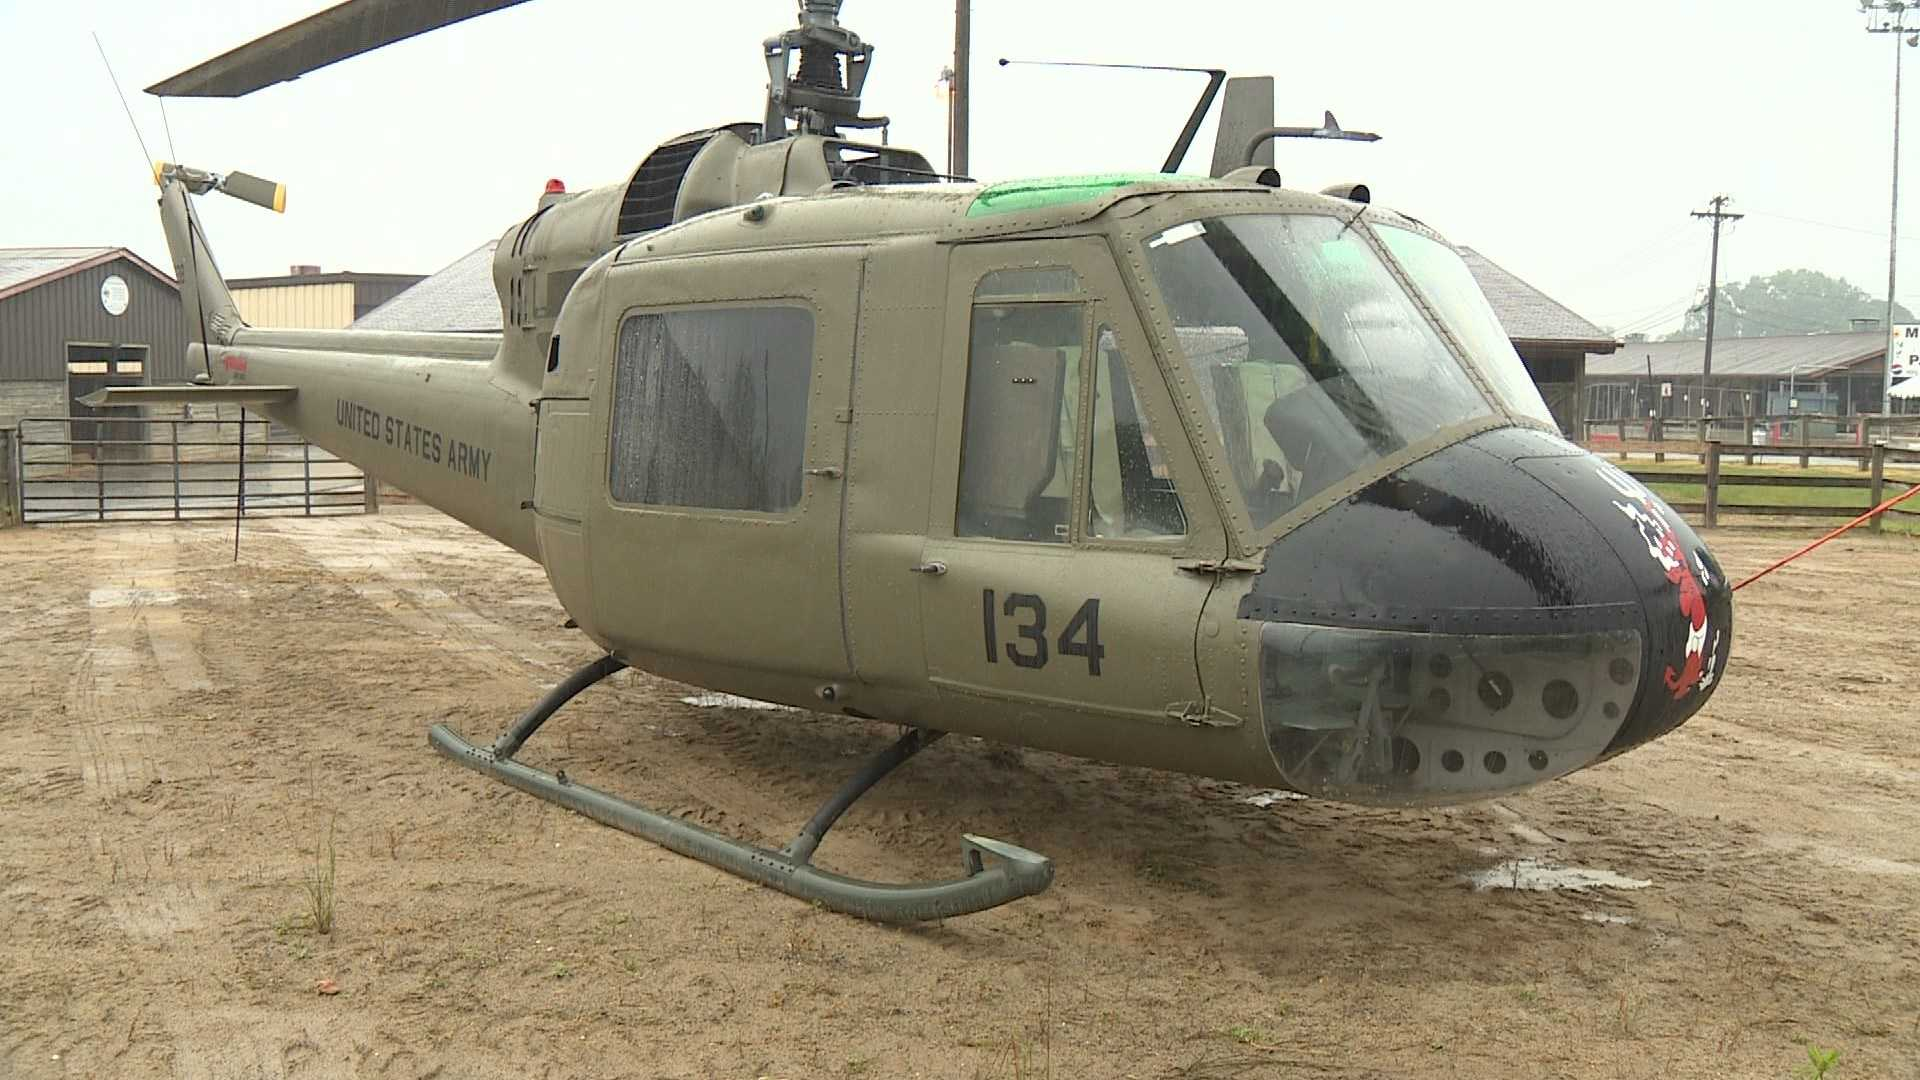 In the air it made one of the most recognizable sounds of the Vietnam War, and as it sits in the rain at Maryland State Fairgrounds, a Vietnam-era Huey will surely bring back memories during an event this weekend in Timonium